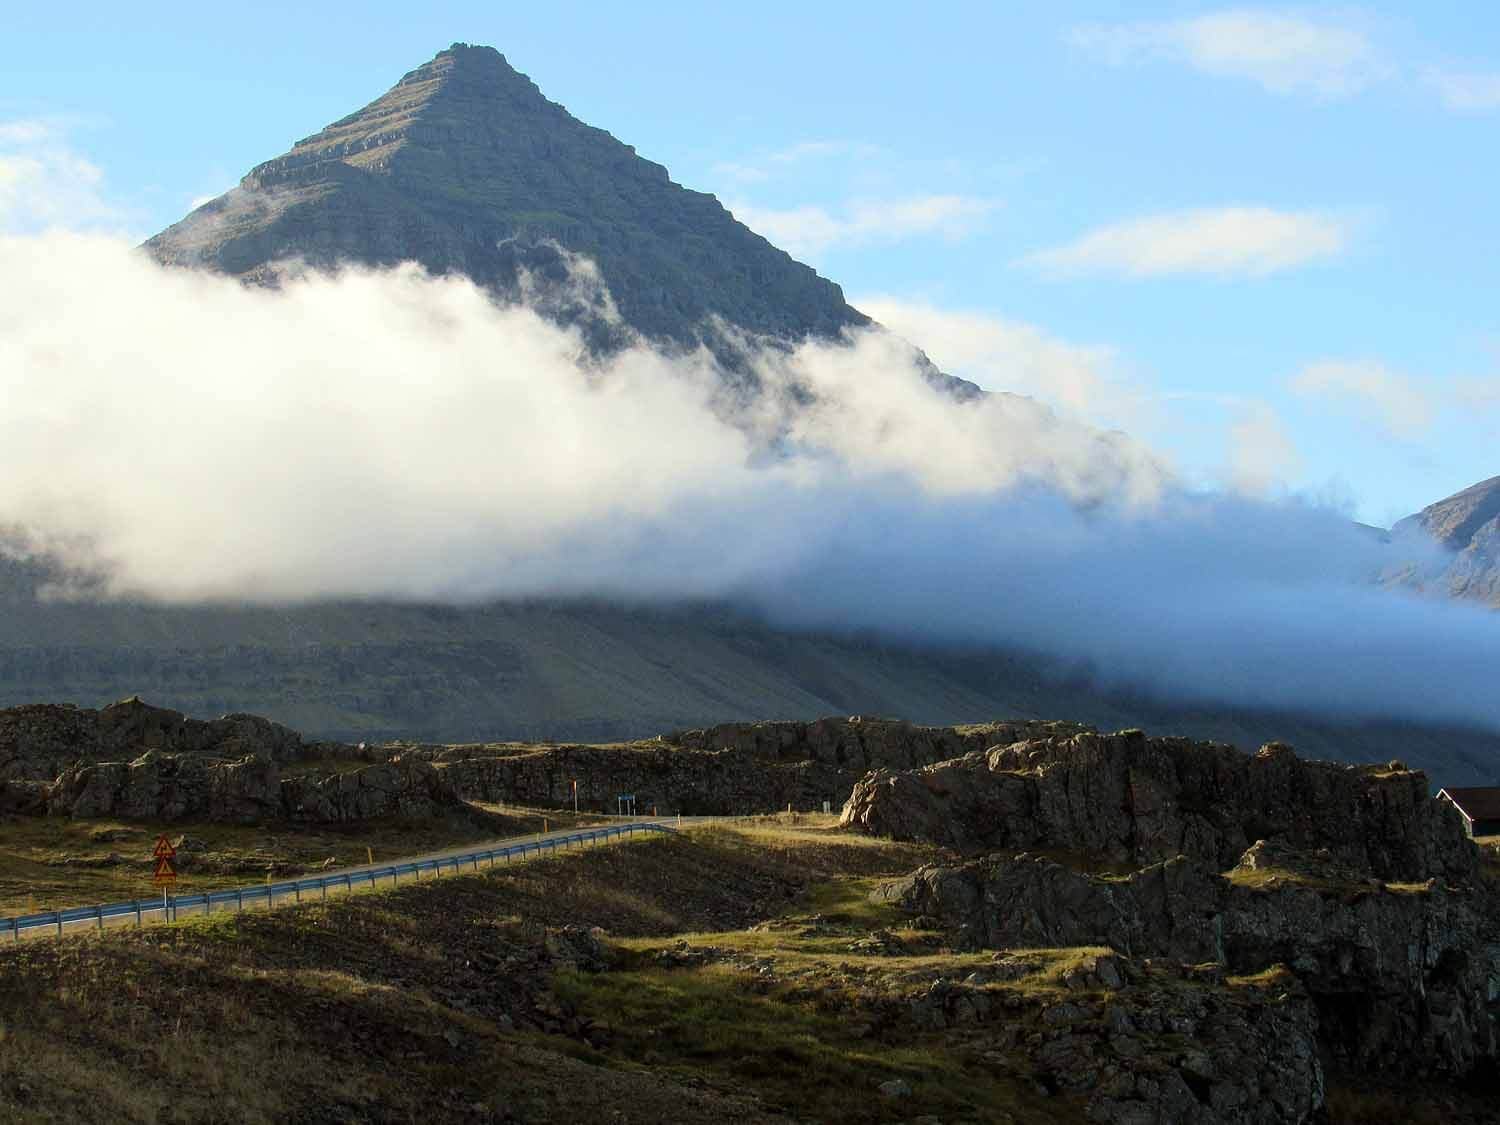 iceland-east-eastfjords-pyramid-mountain-fog-clouds.JPG